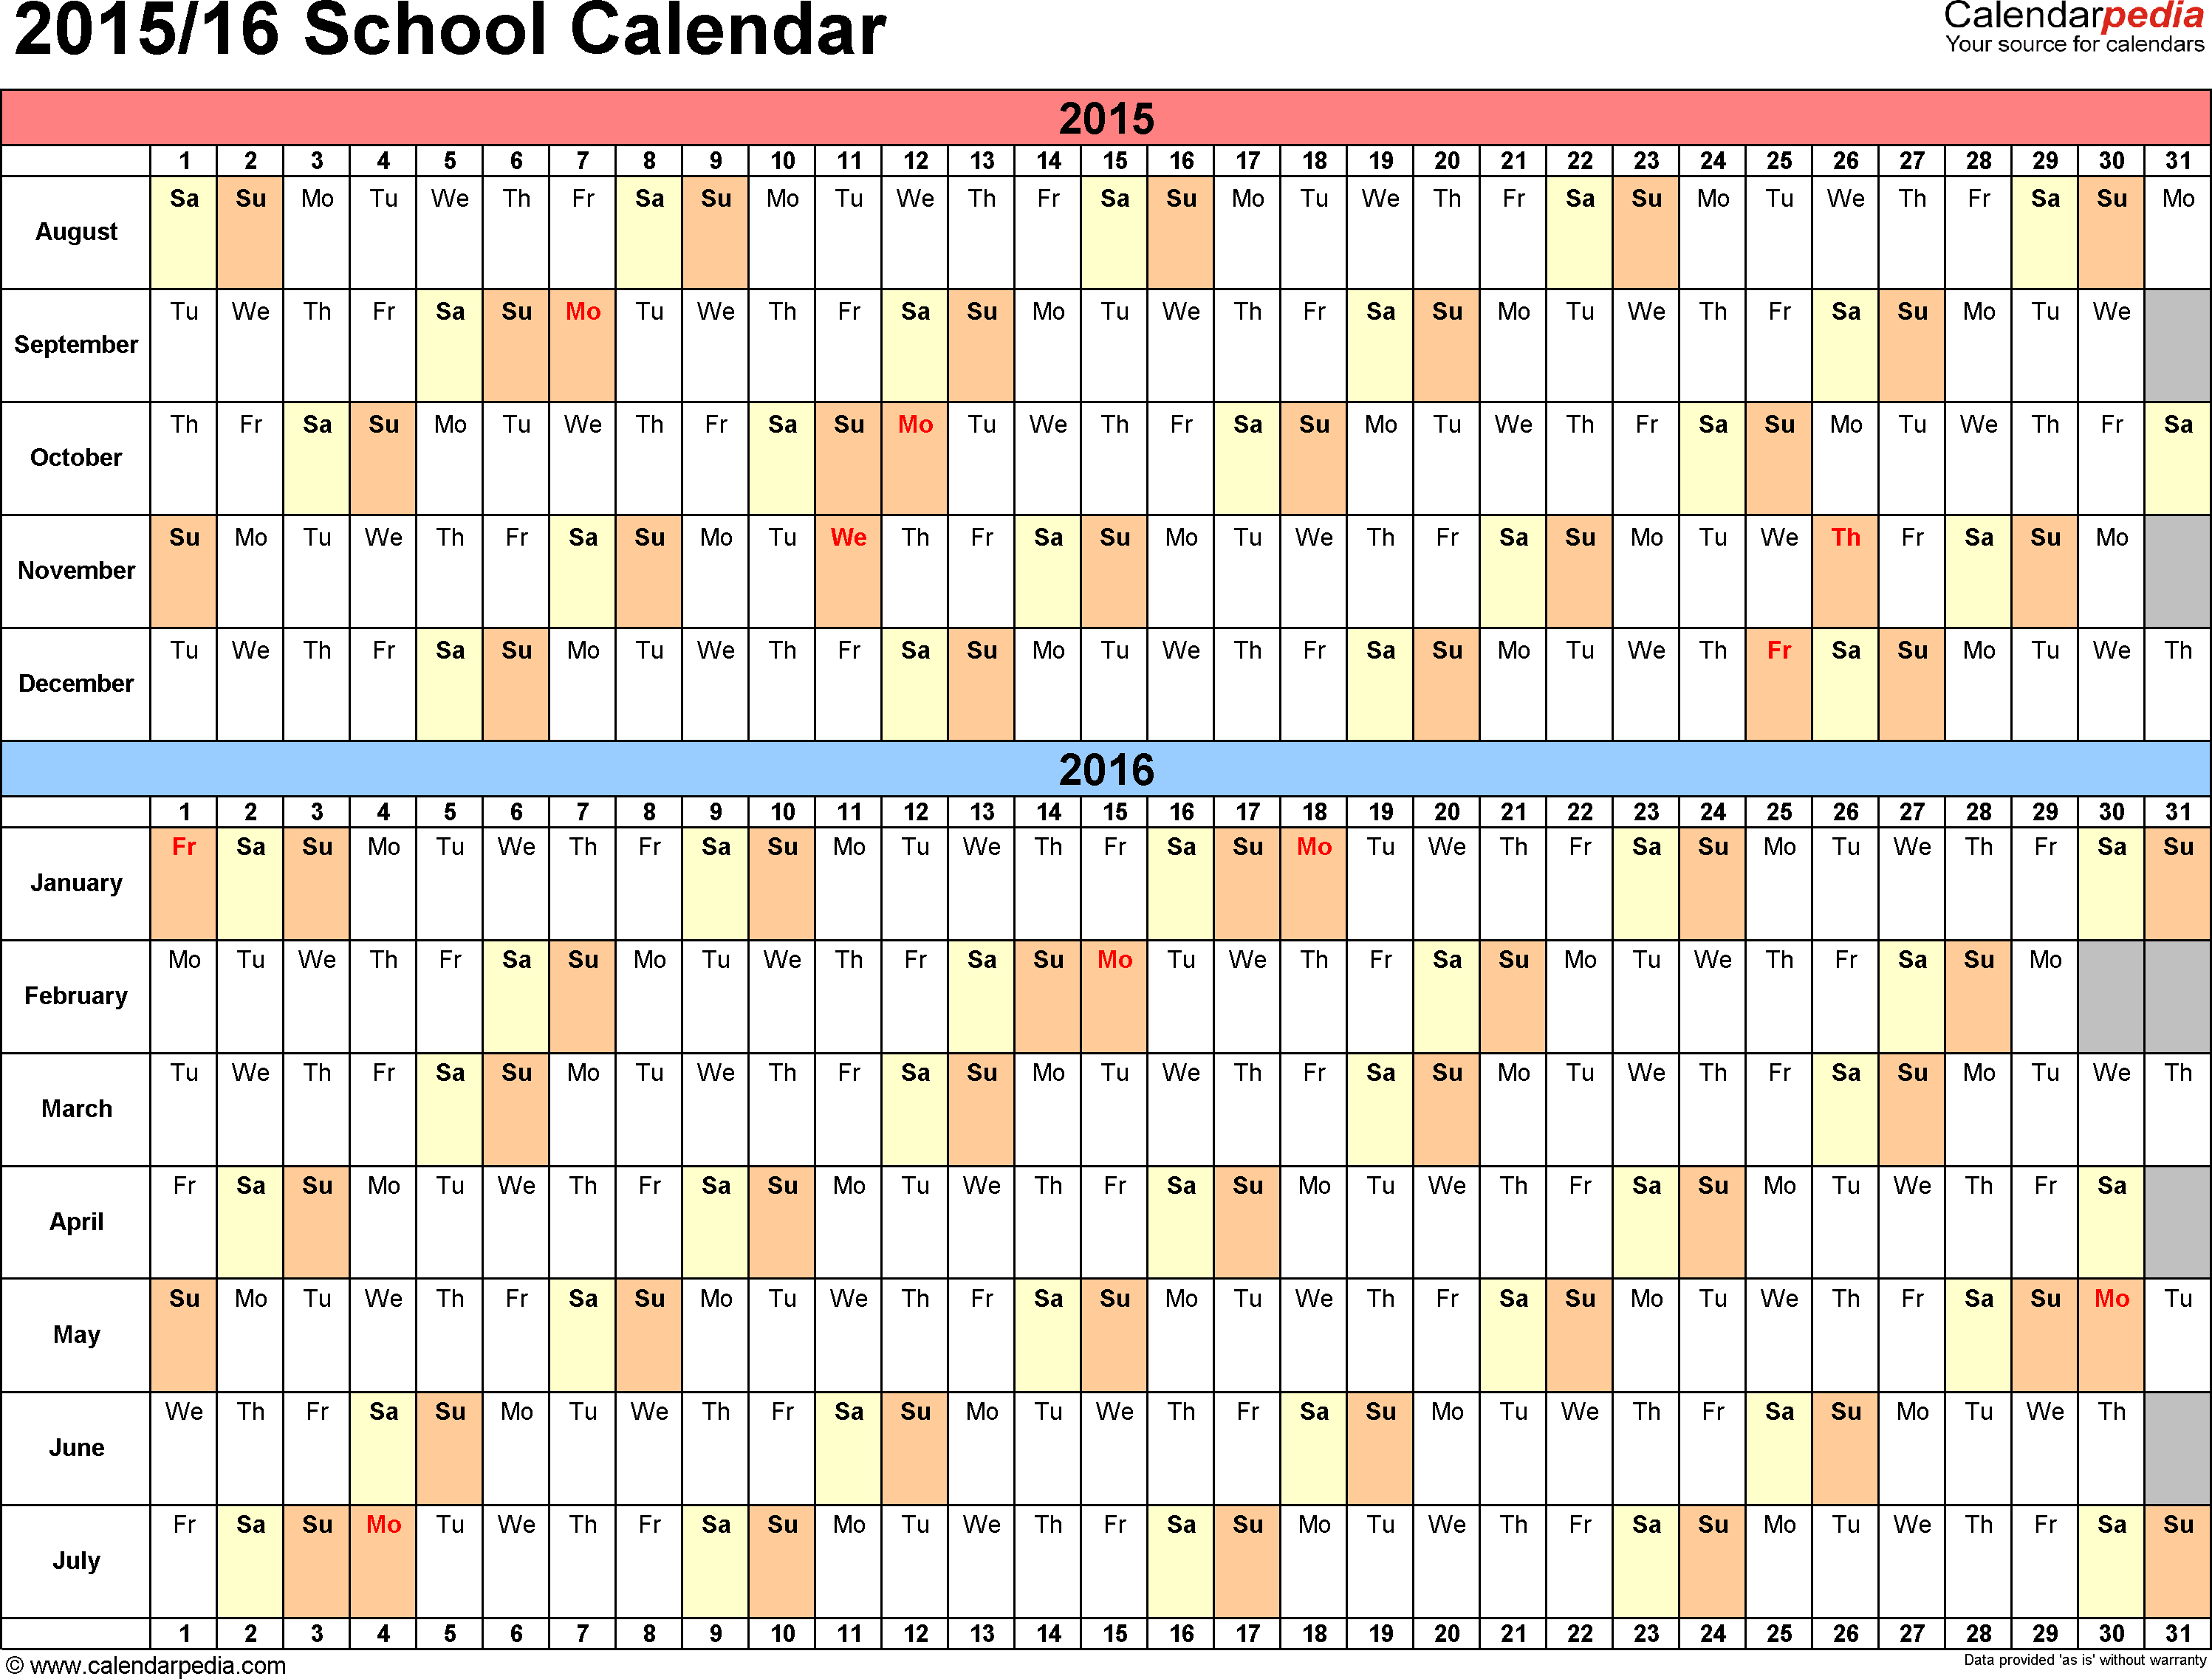 Template 3: School calendar 2015/16 for PDF, landscape orientation, days horizontally (linear), 1 page